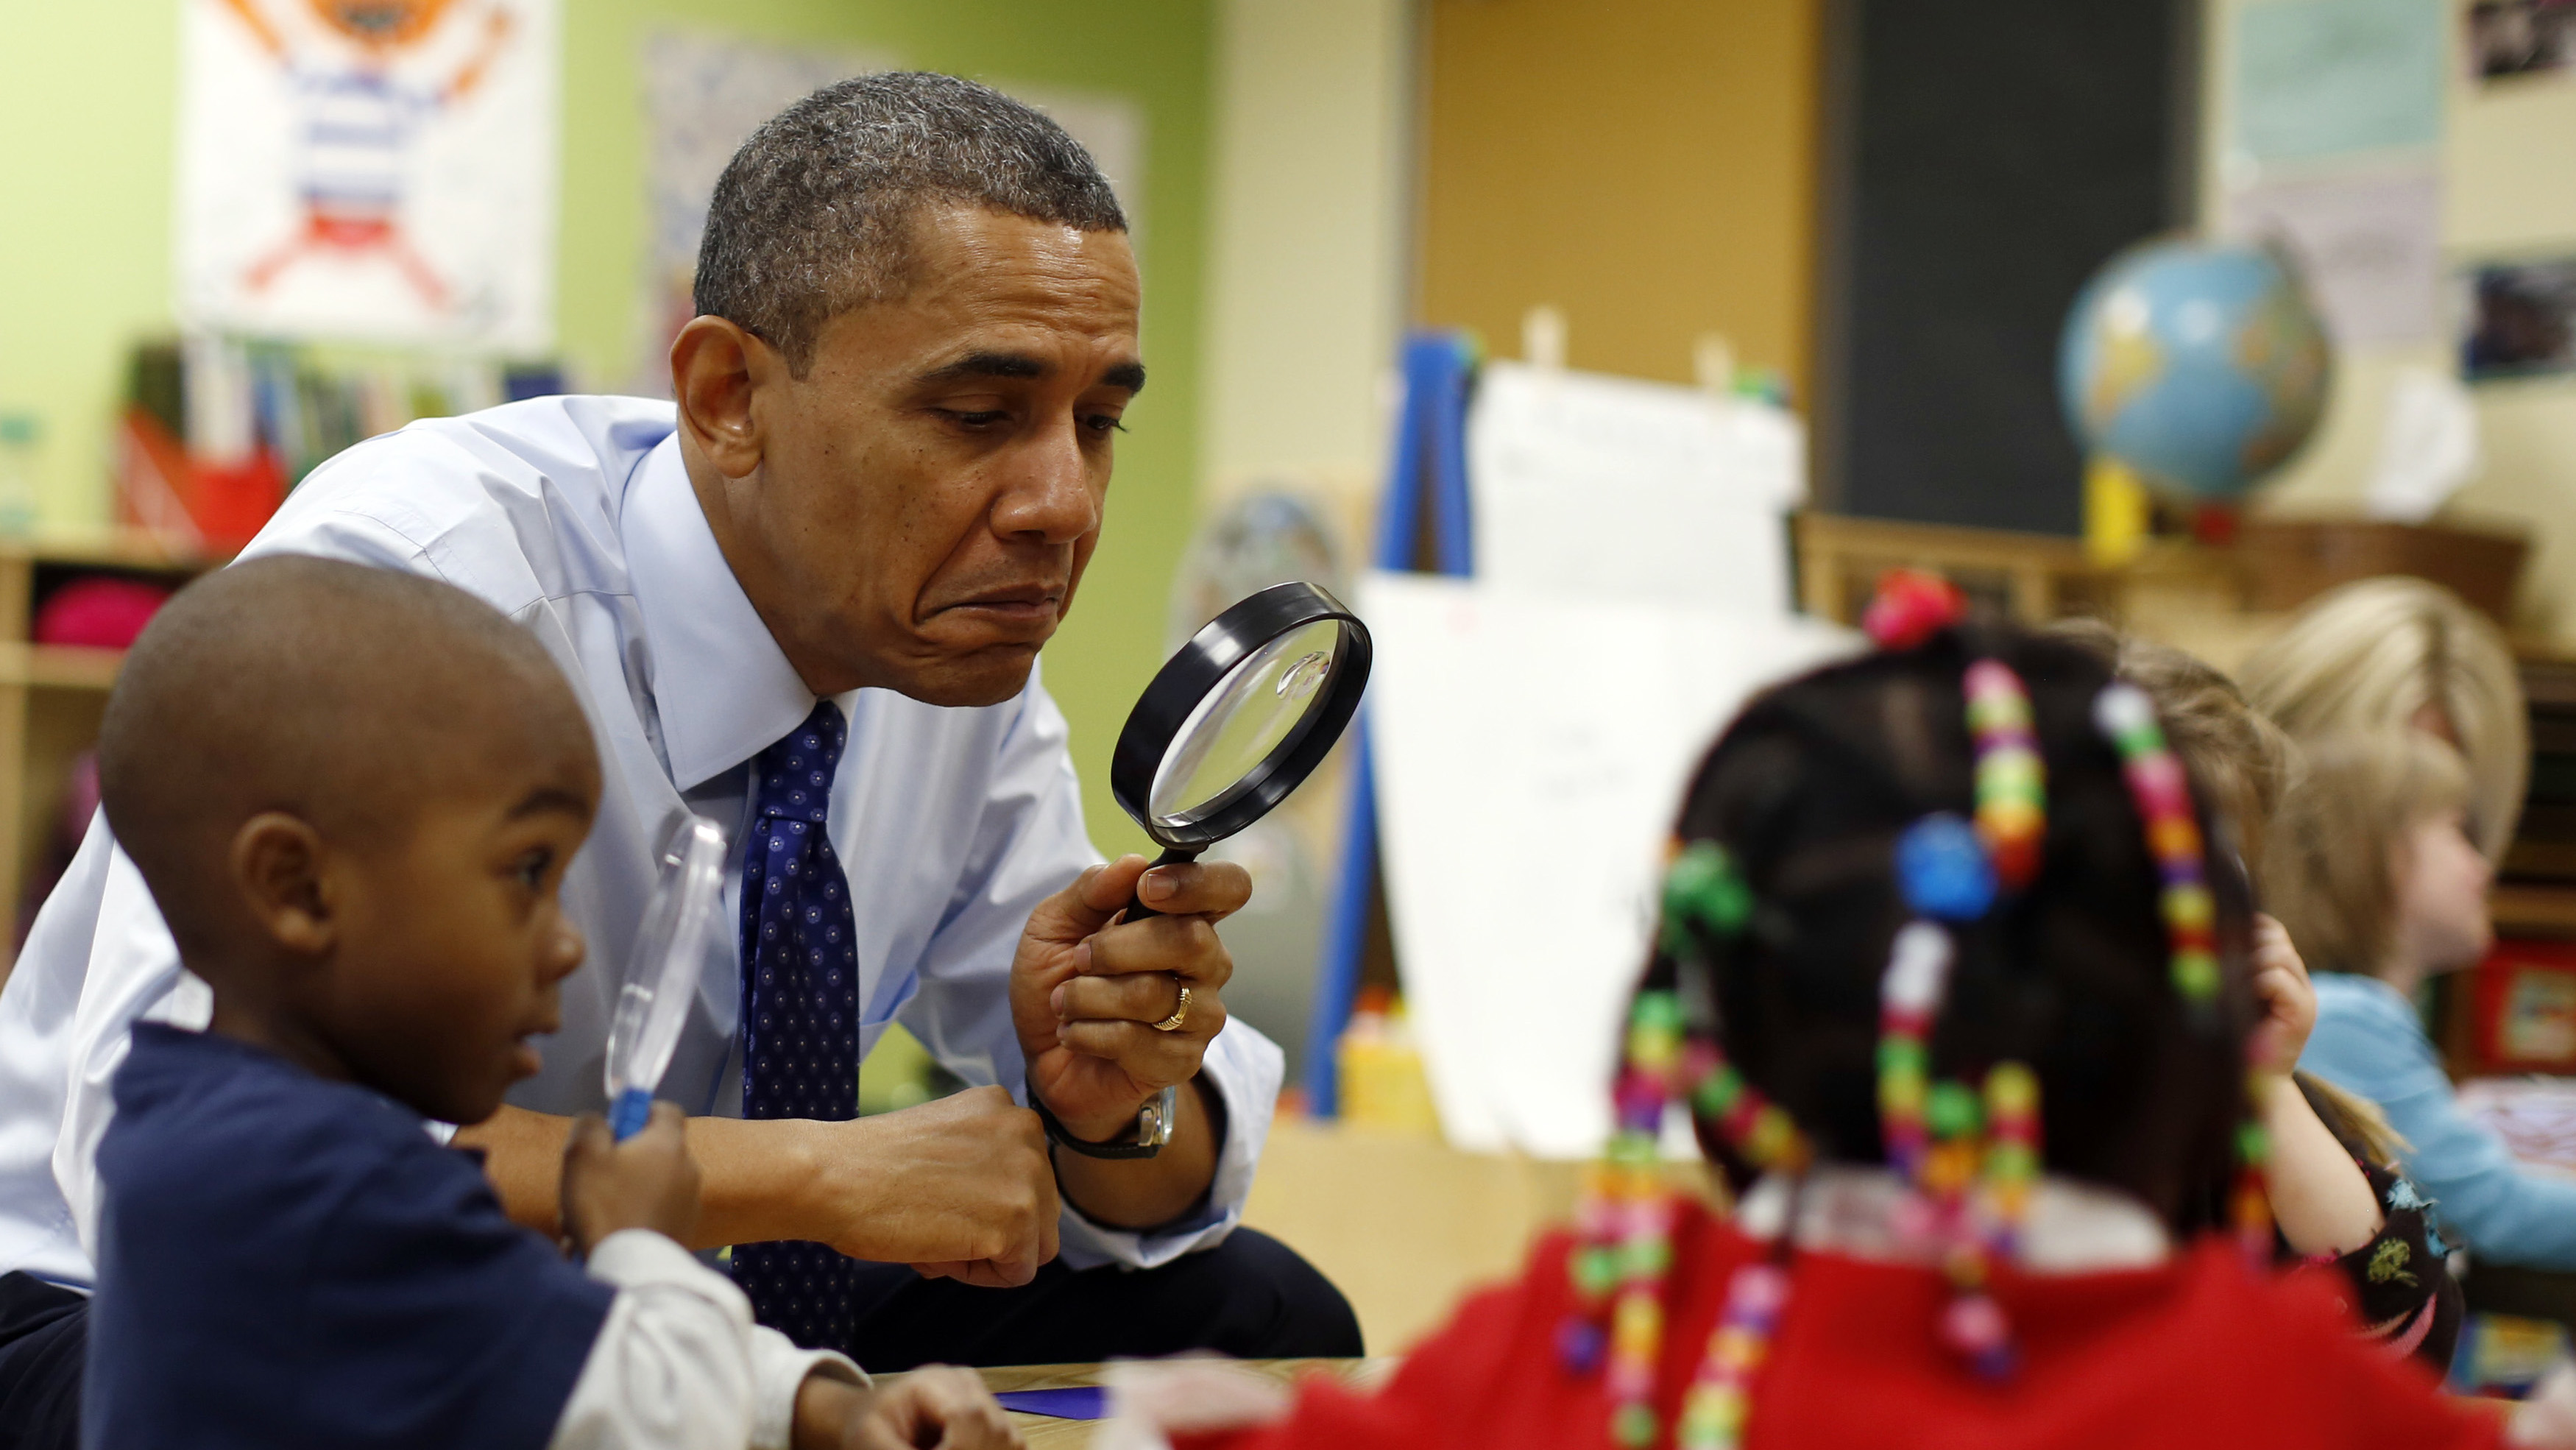 Obama uses a magnifying glass to play a game with children in a pre-kindergarten classroom at College Heights early childhood learning center in Decatur